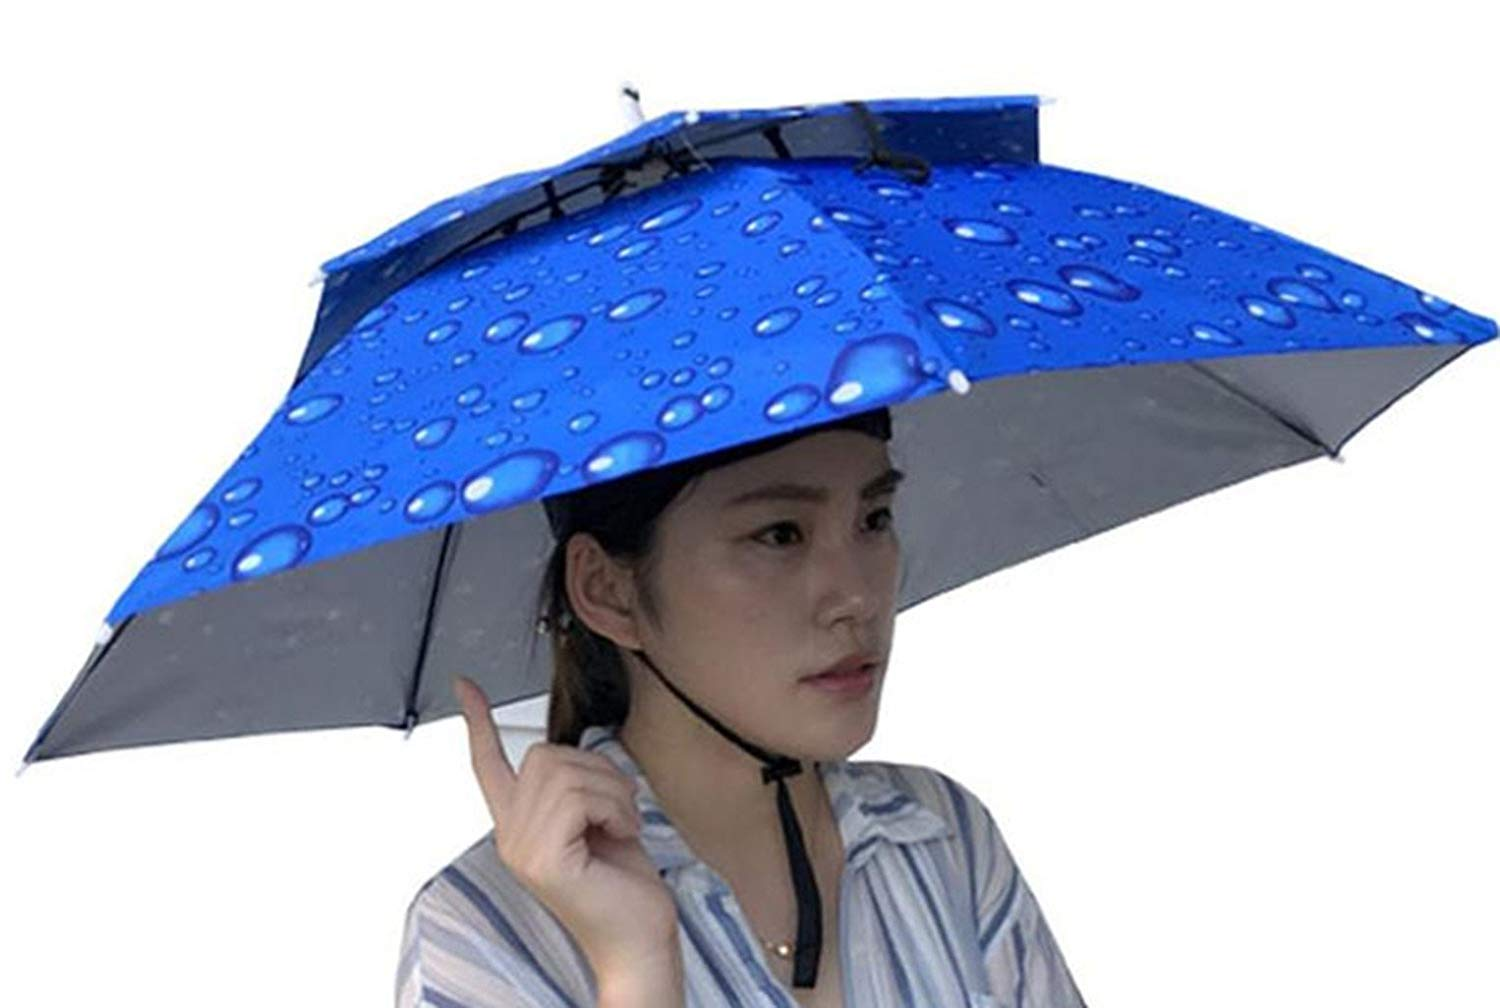 b412eff88bba5 Get Quotations · Double Layer Umbrella Hat for Women and Men